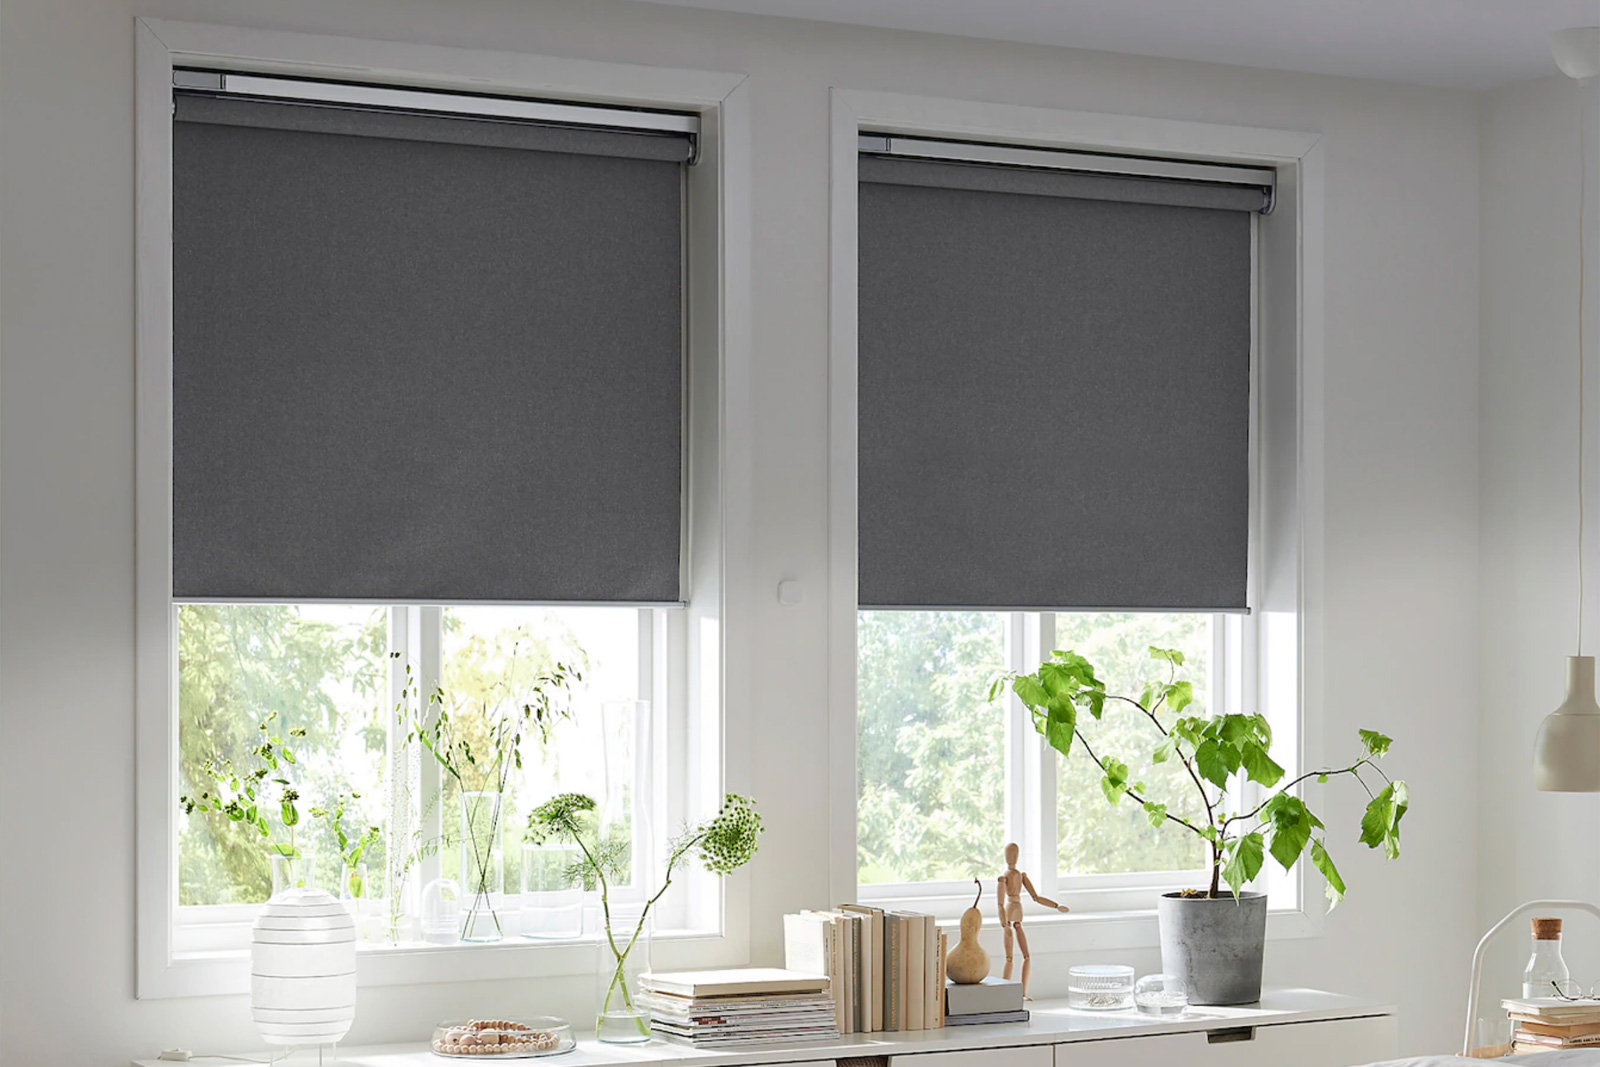 Ikea S Smart Blinds Are Finally